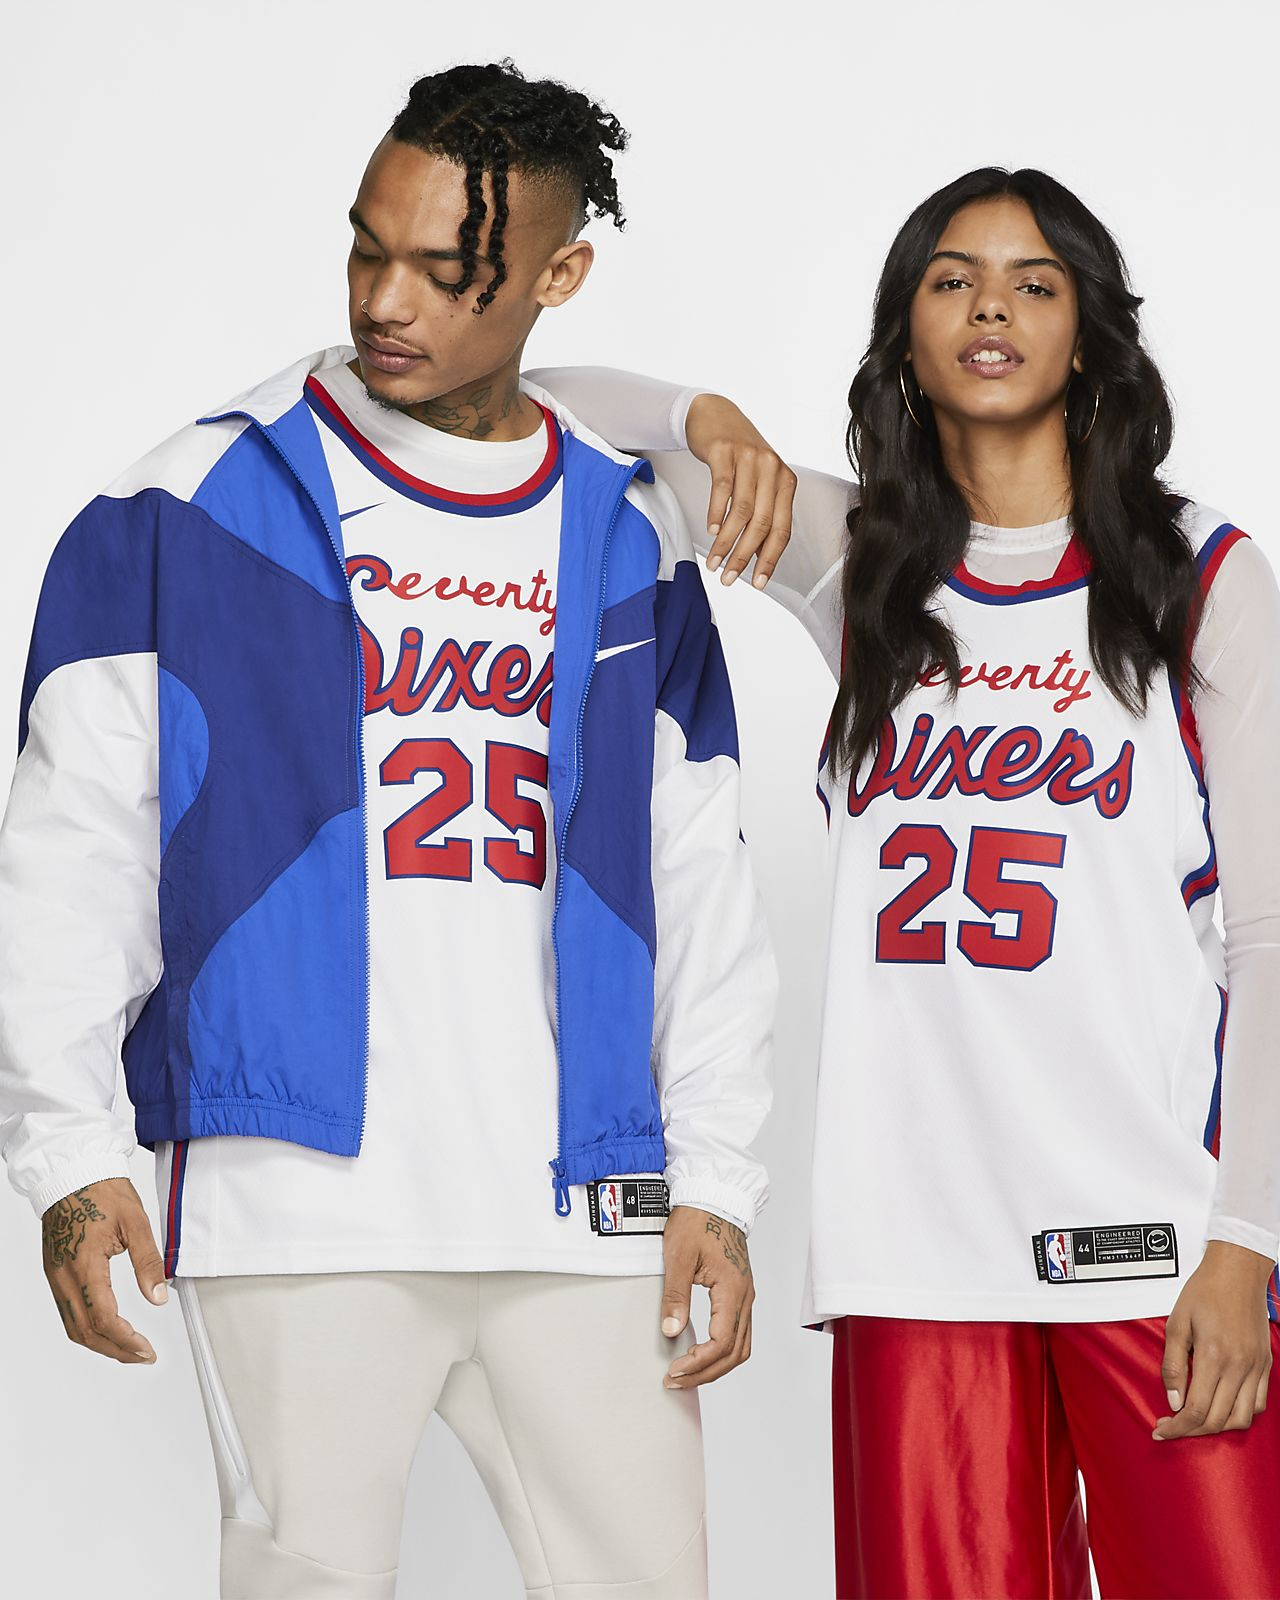 费城 76 人队 (Ben Simmons) Classic Edition Swingman Nike NBA Connected Jersey 男子球衣